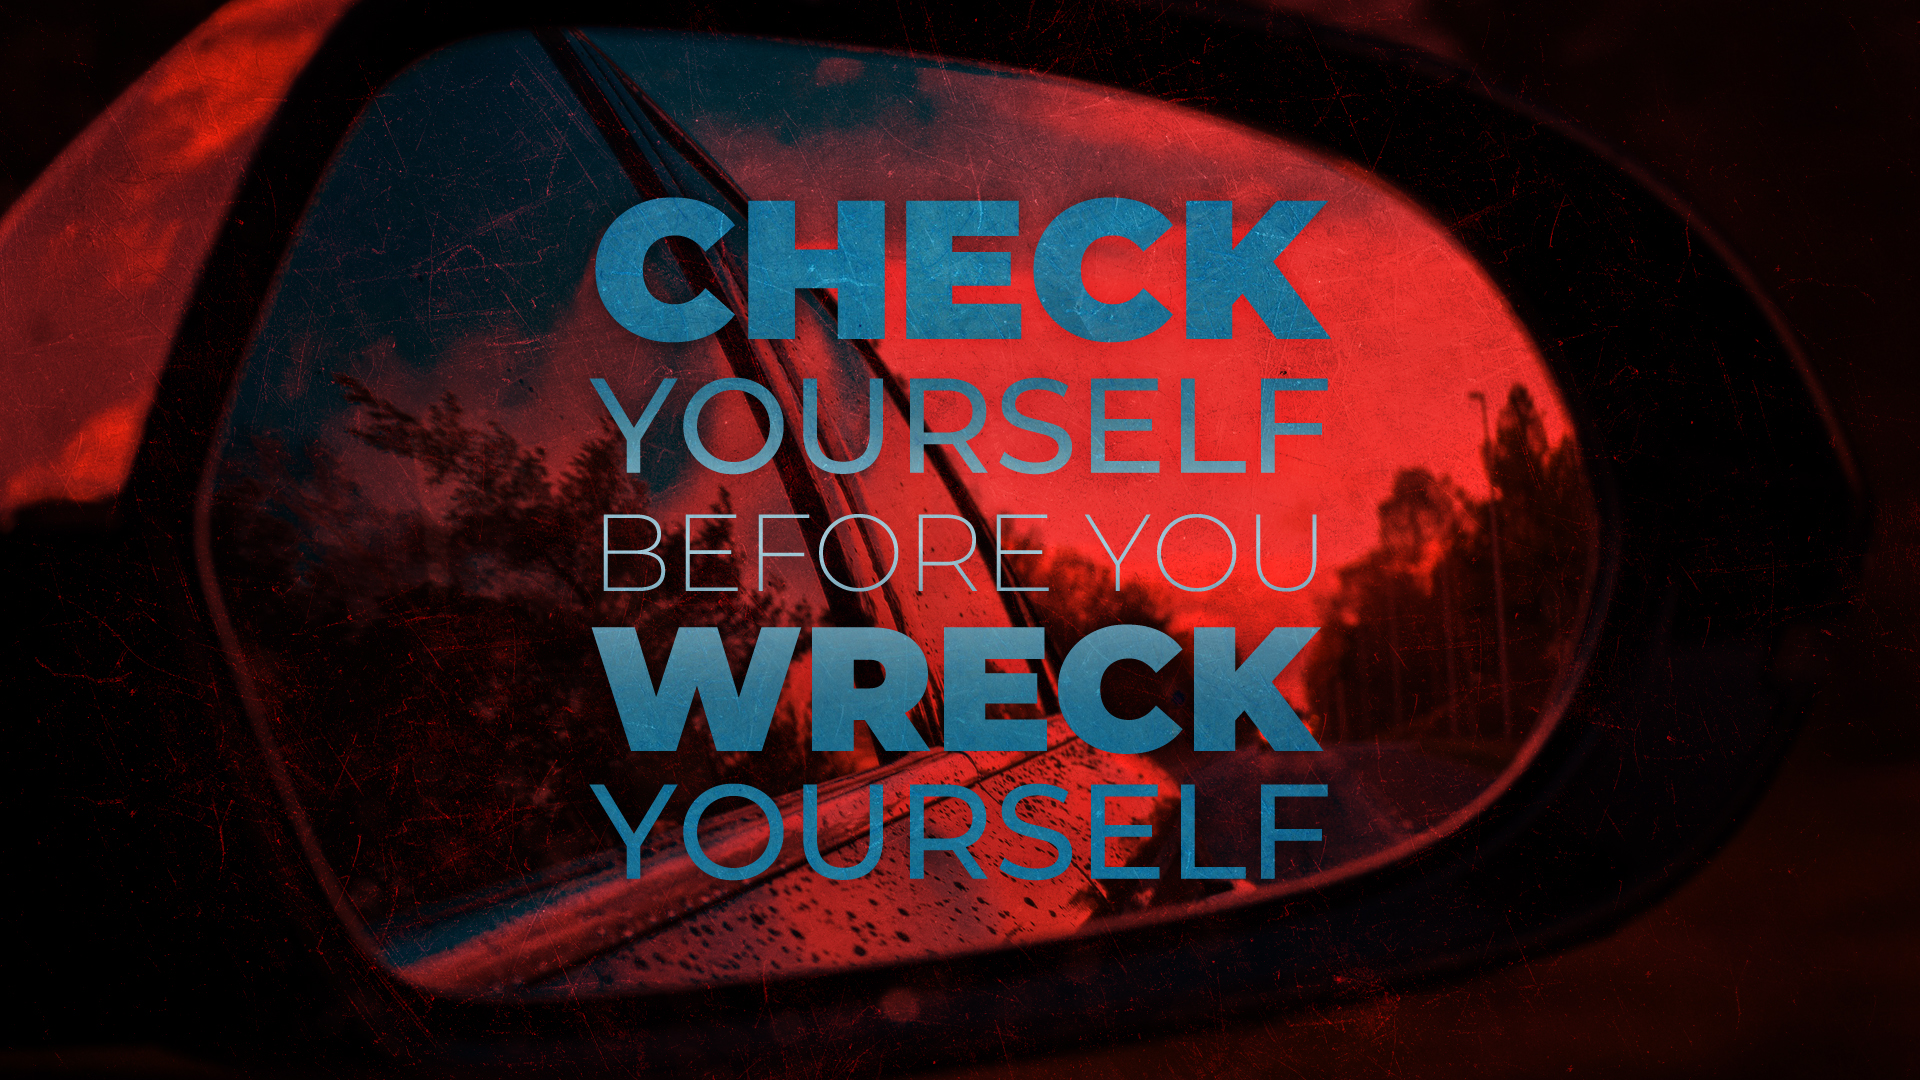 check yourself before you wreck yourself new life church